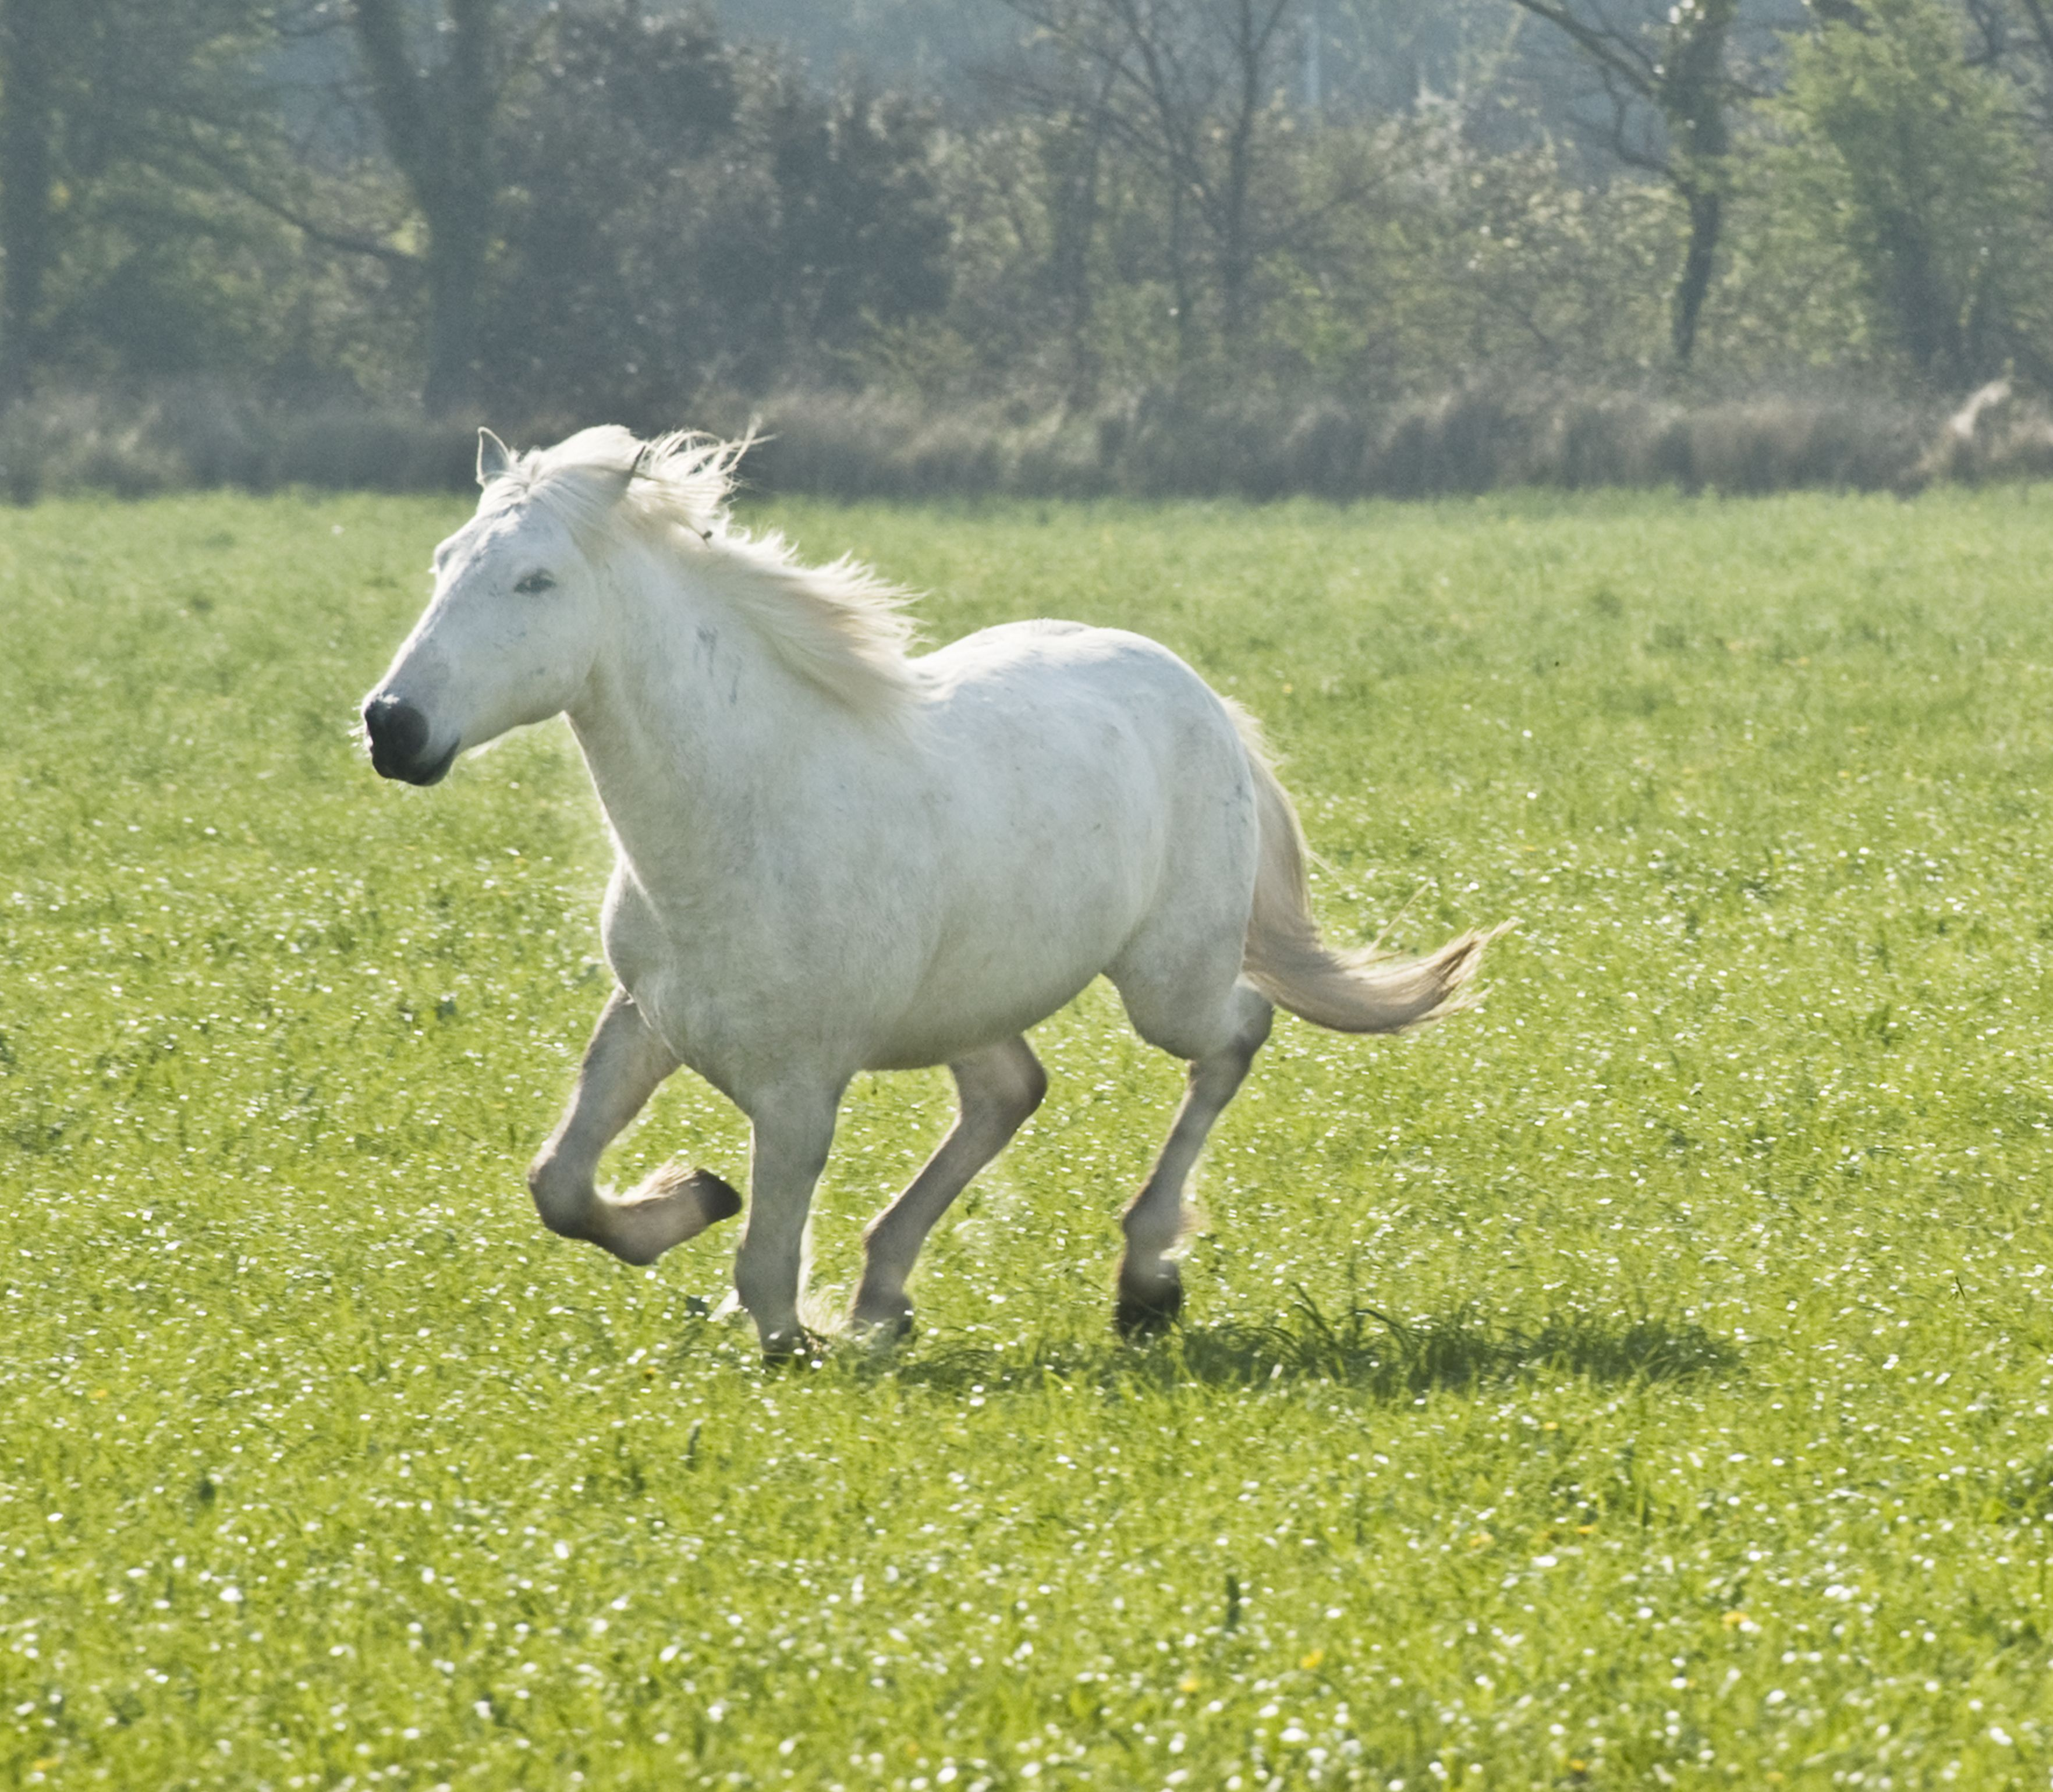 Chasing a horse might be teaching it to run away.